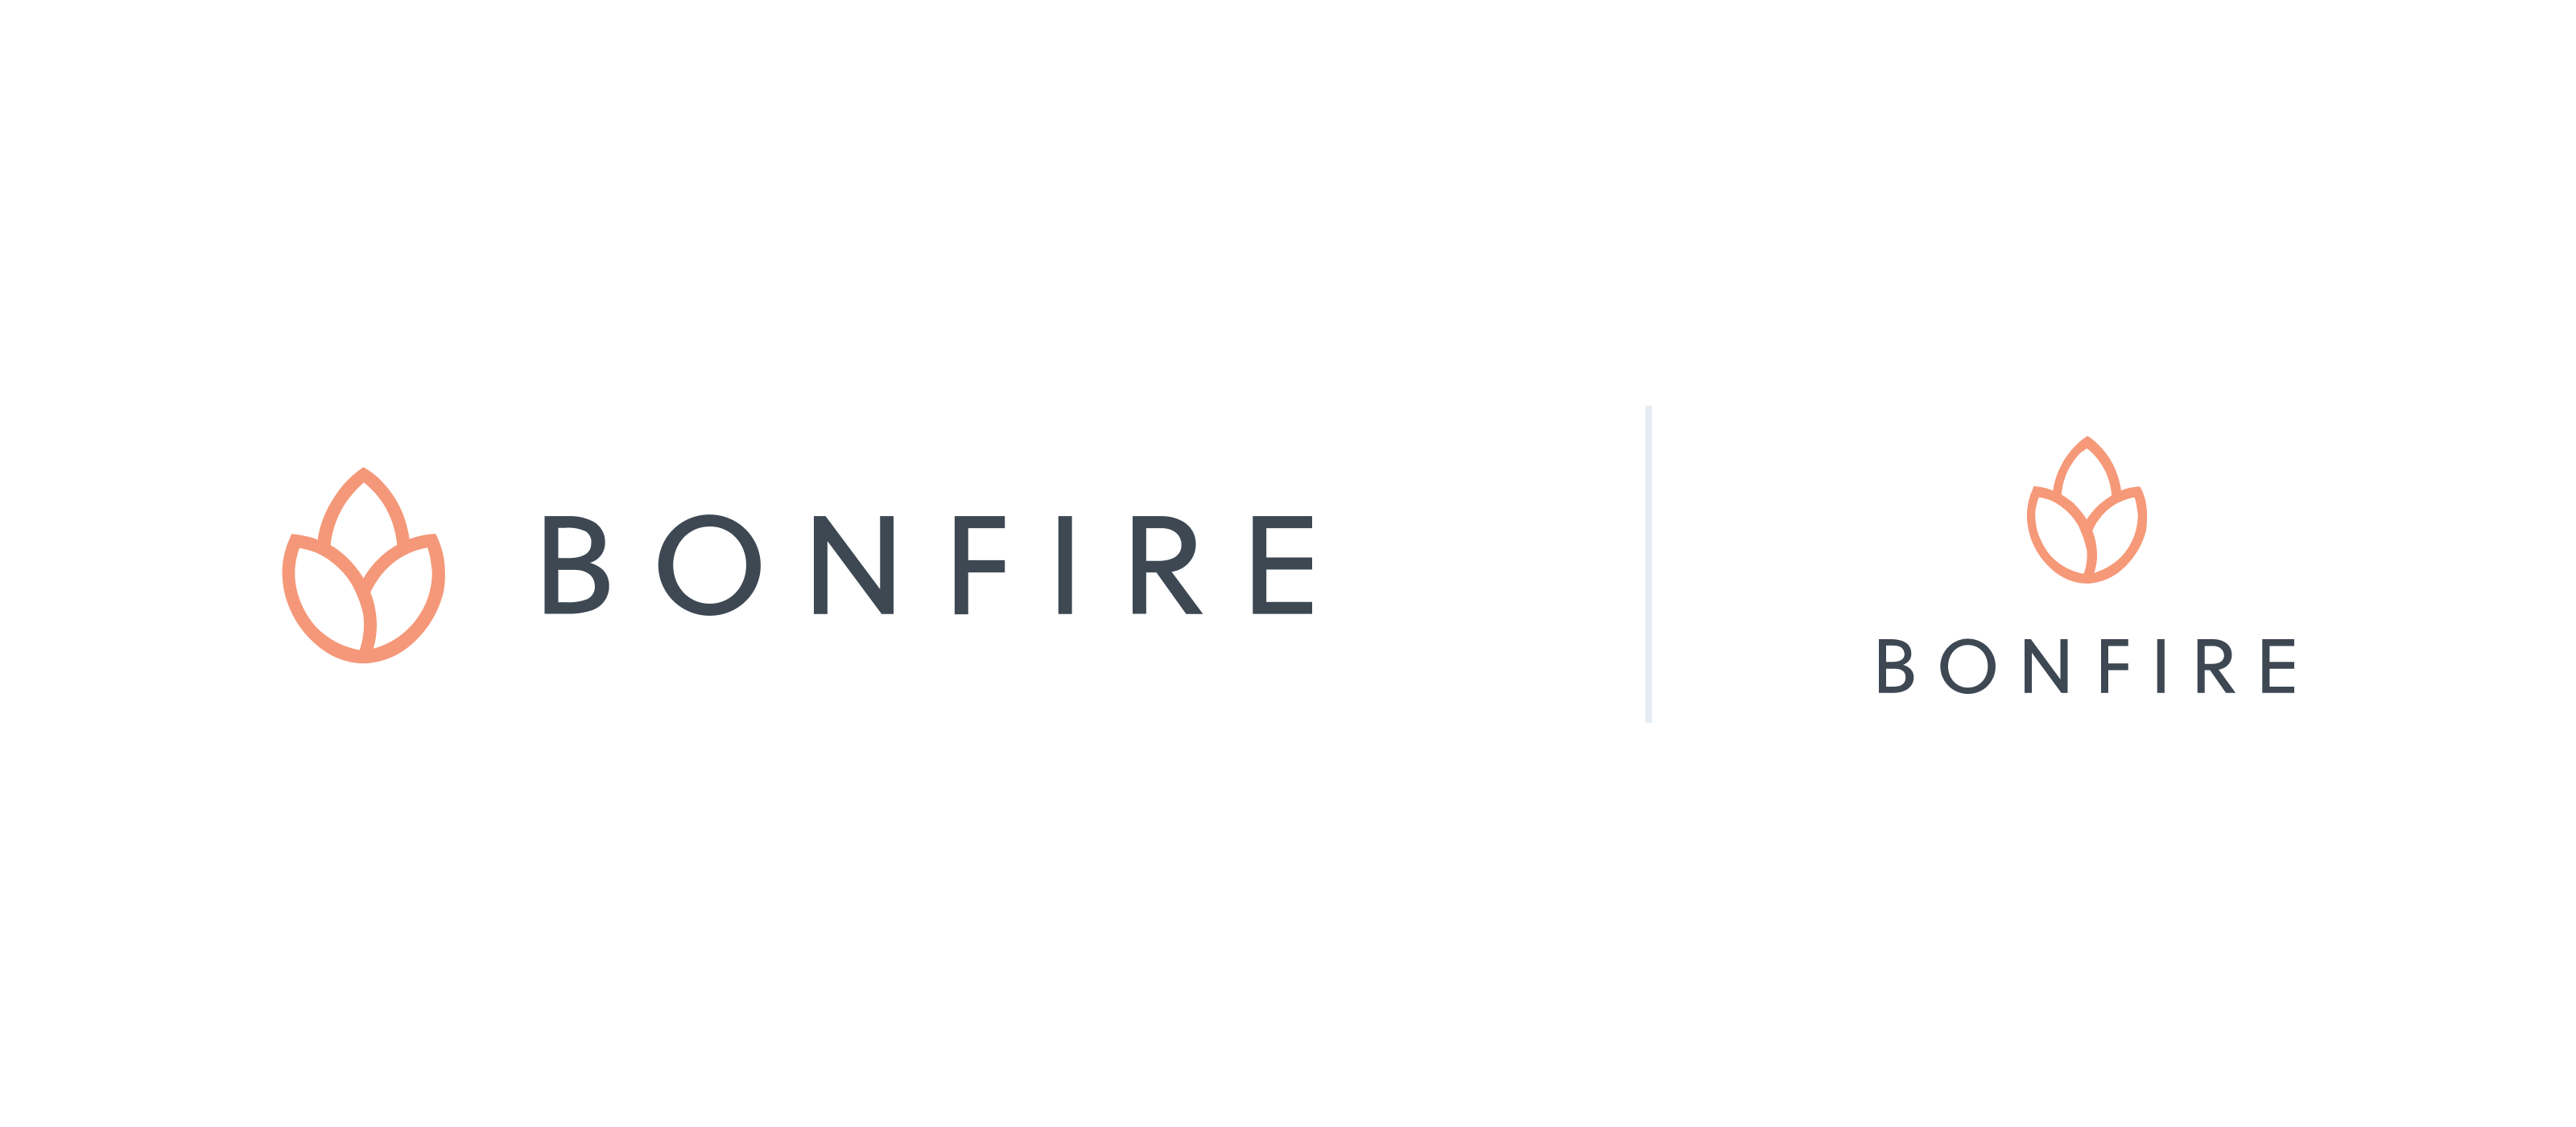 Bonfire primary logo example